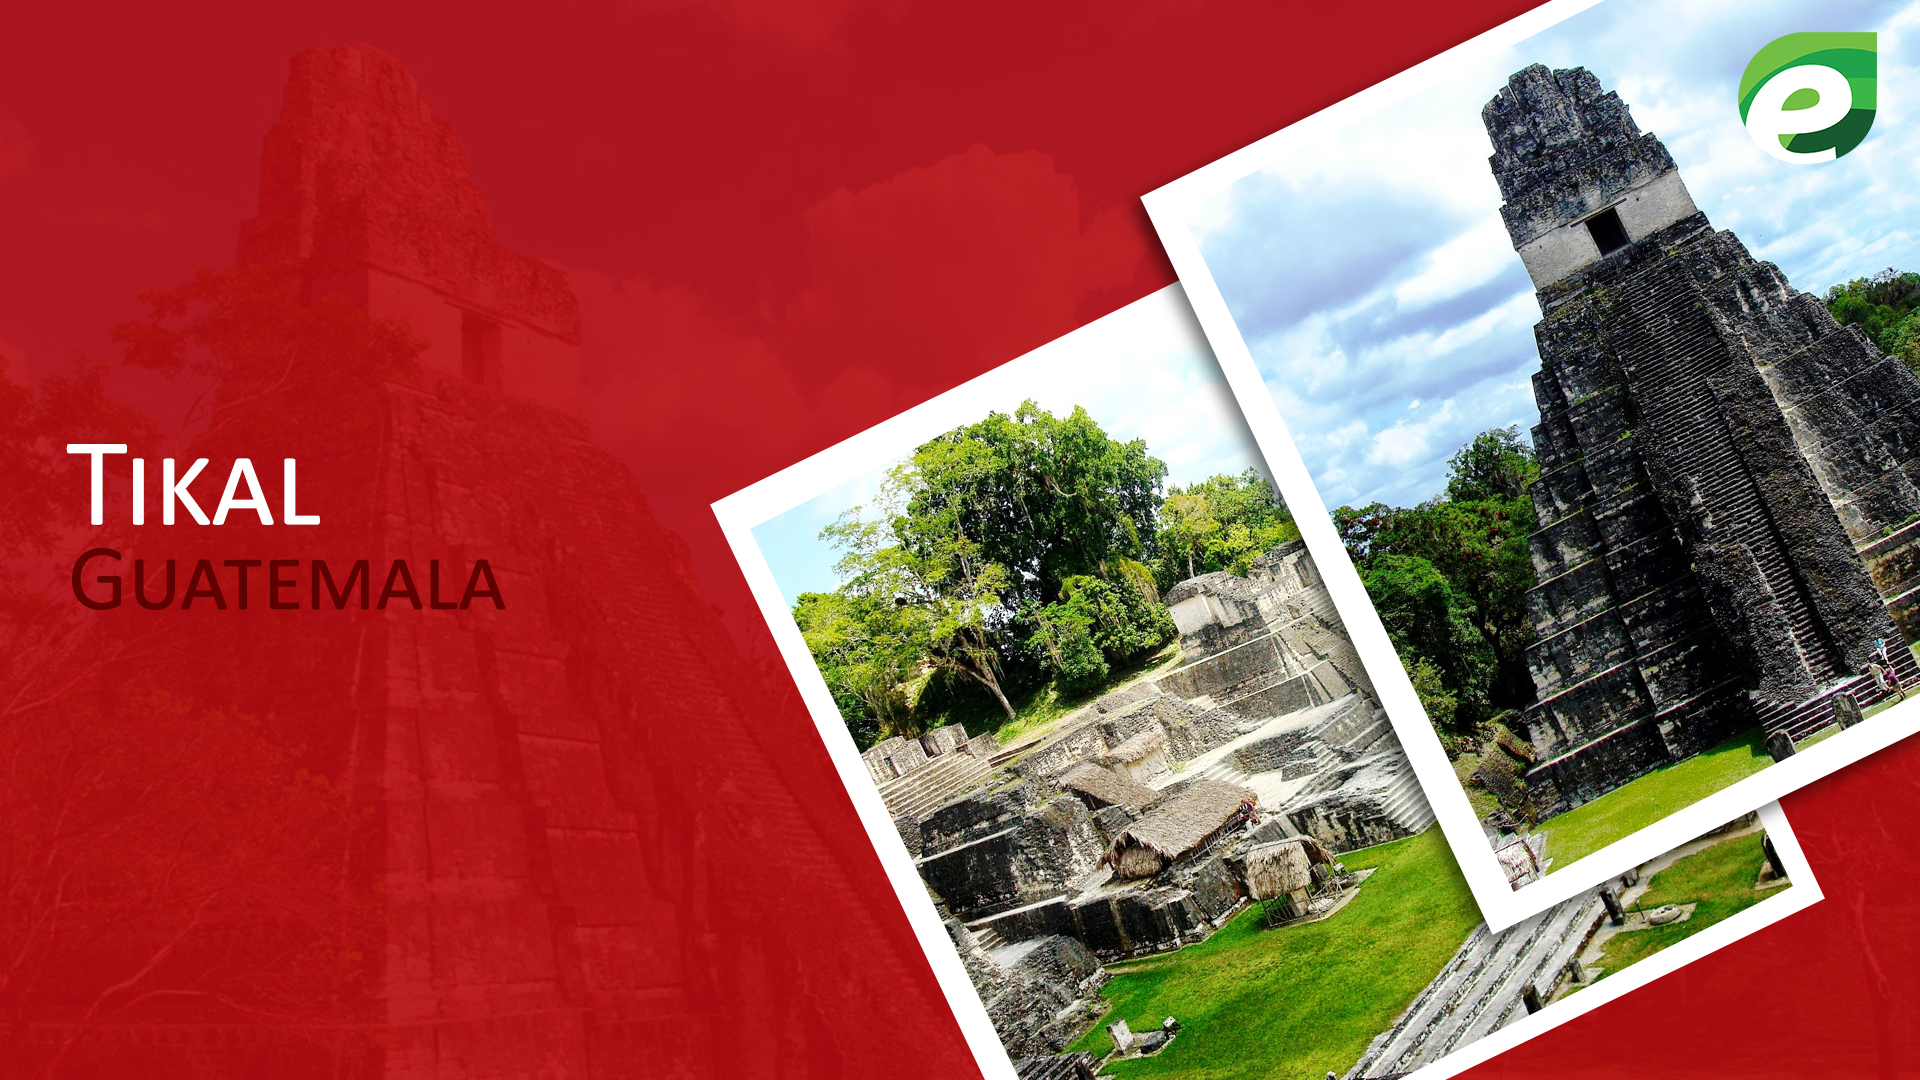 historical sites to visit- Tikal